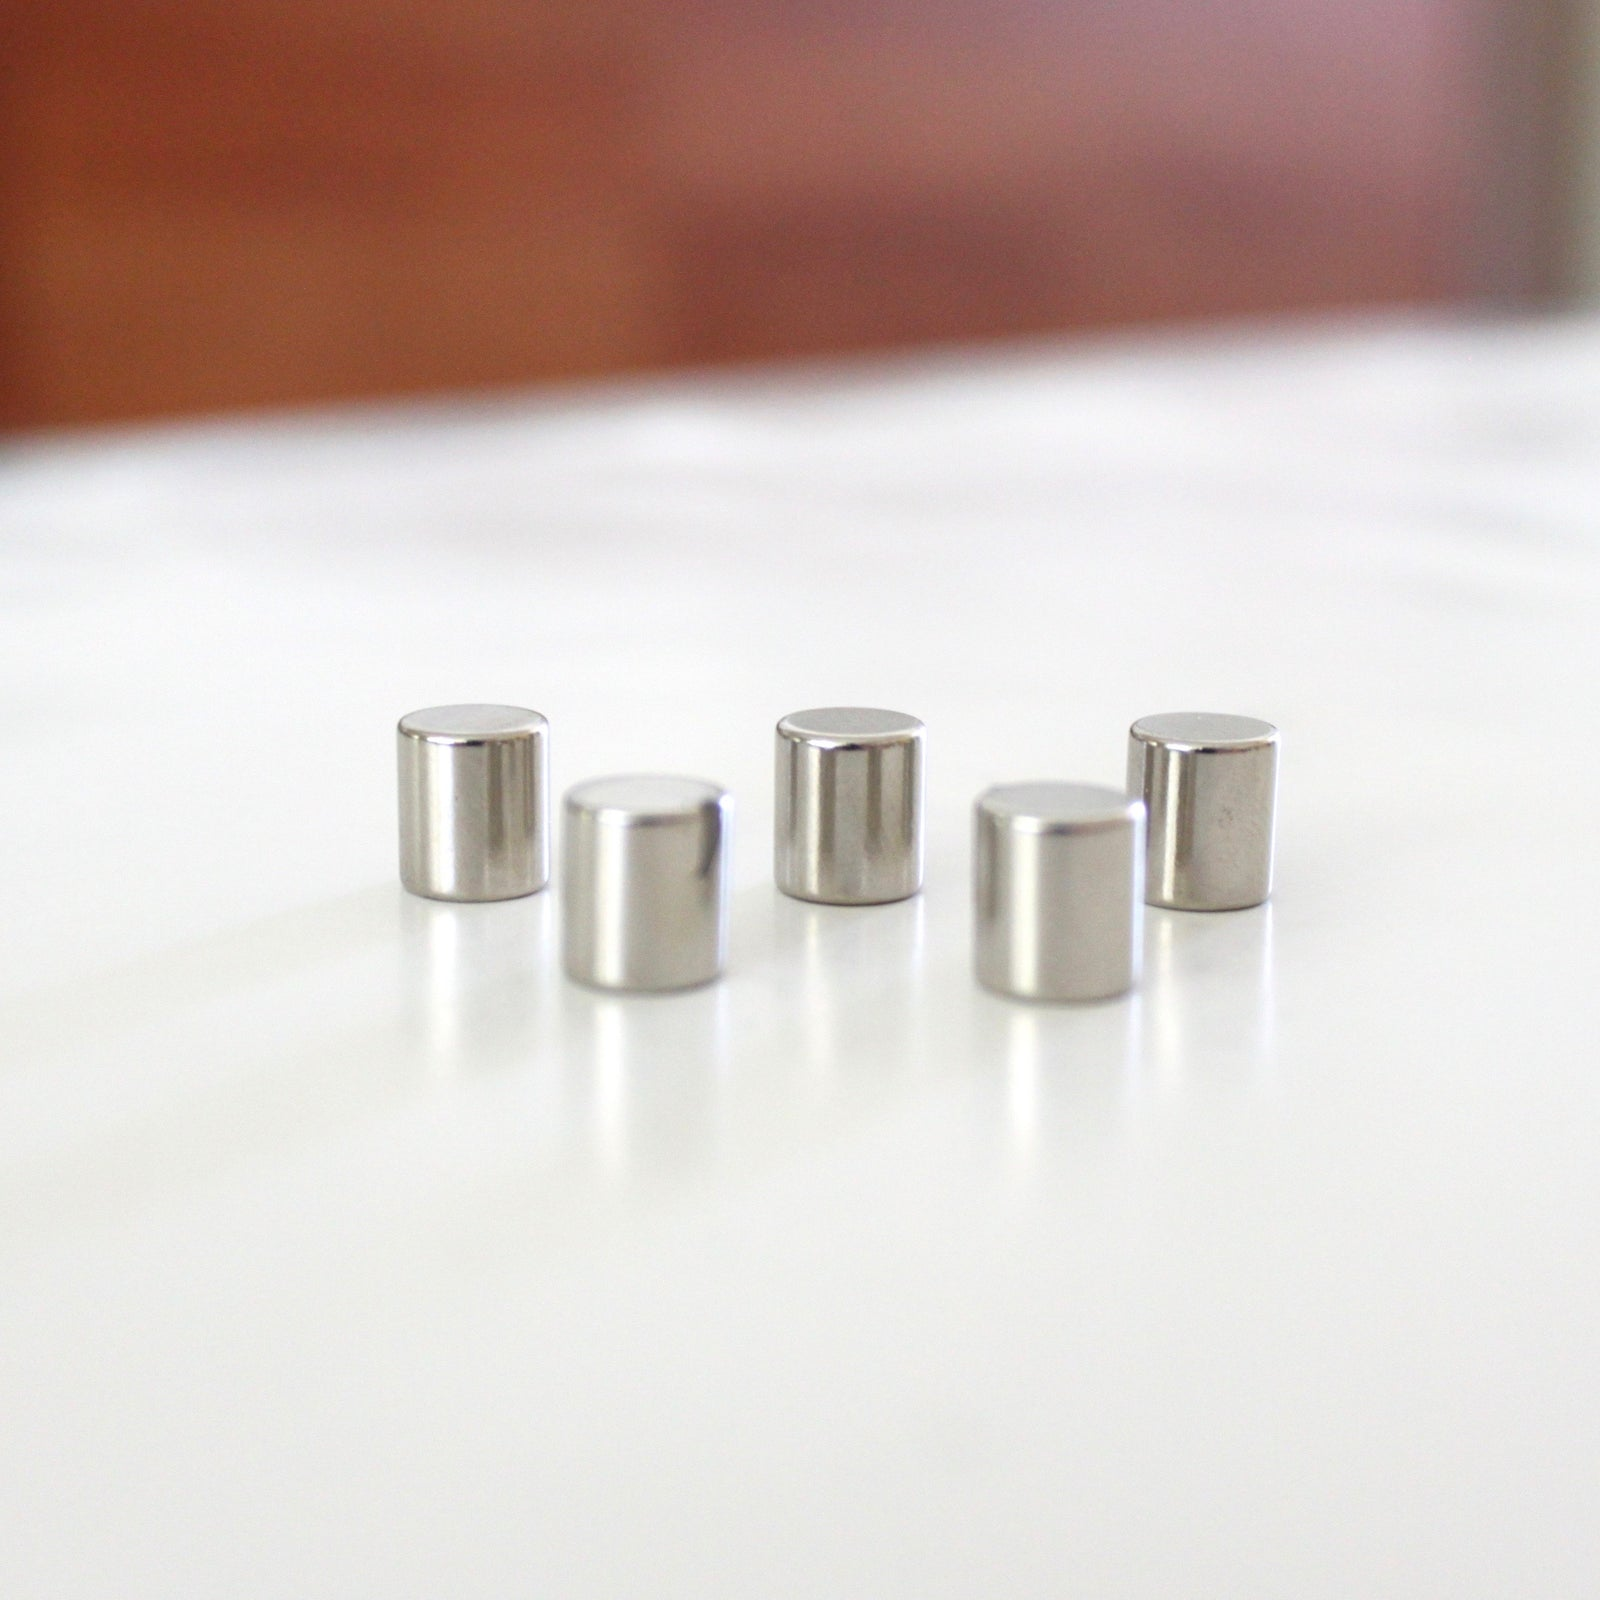 Ultra strong magnets - Neodymium magnet - Rare Earth Magnets - cylinders, extremely strong